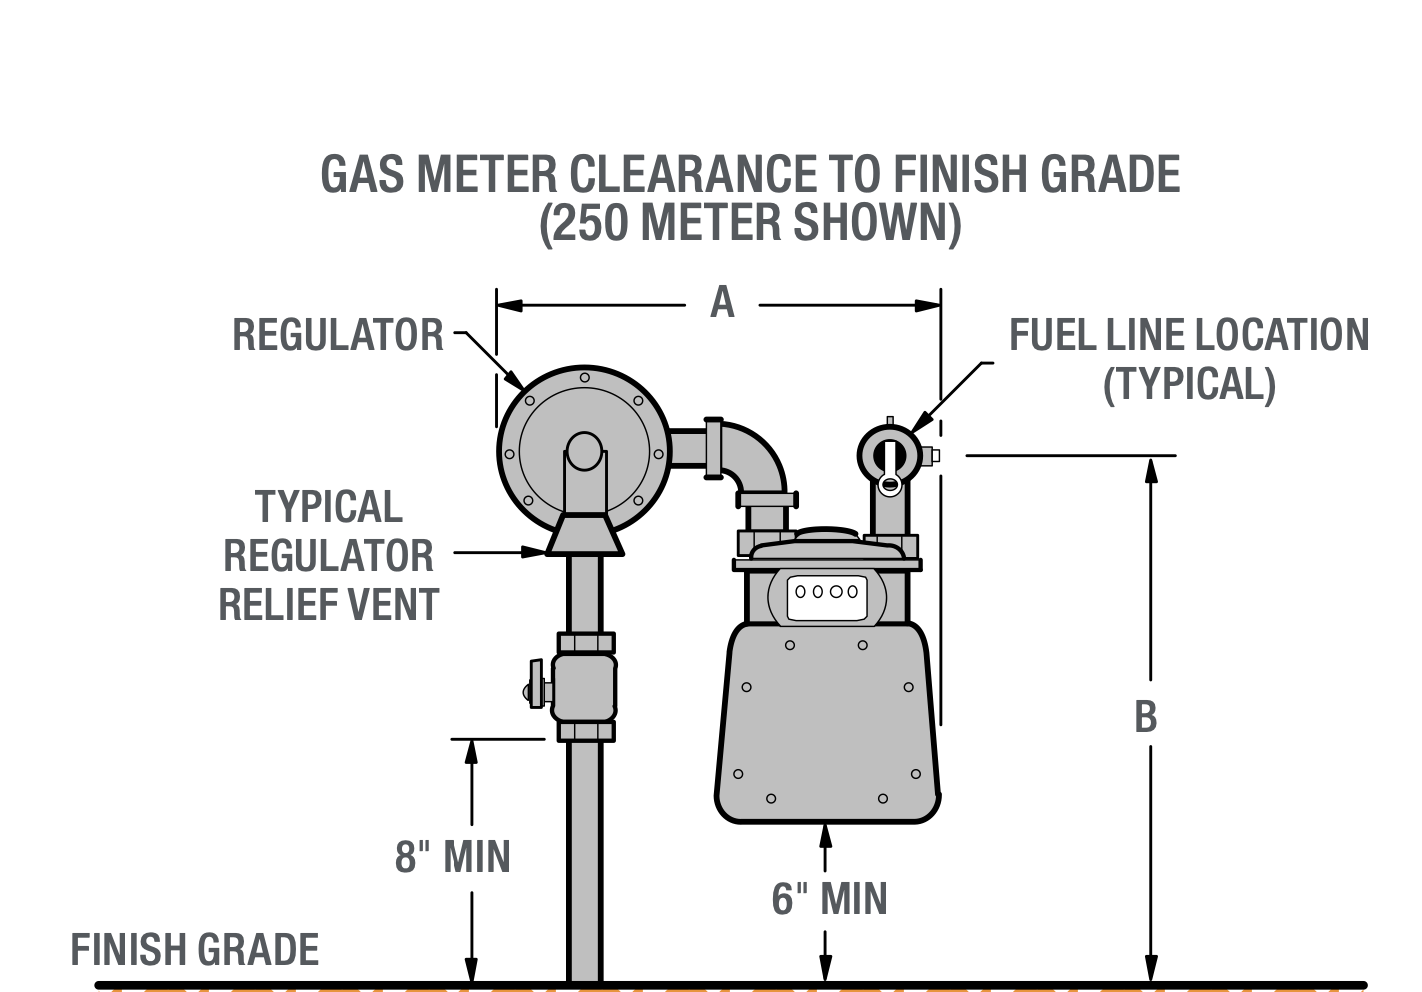 gasmeterclearance.png